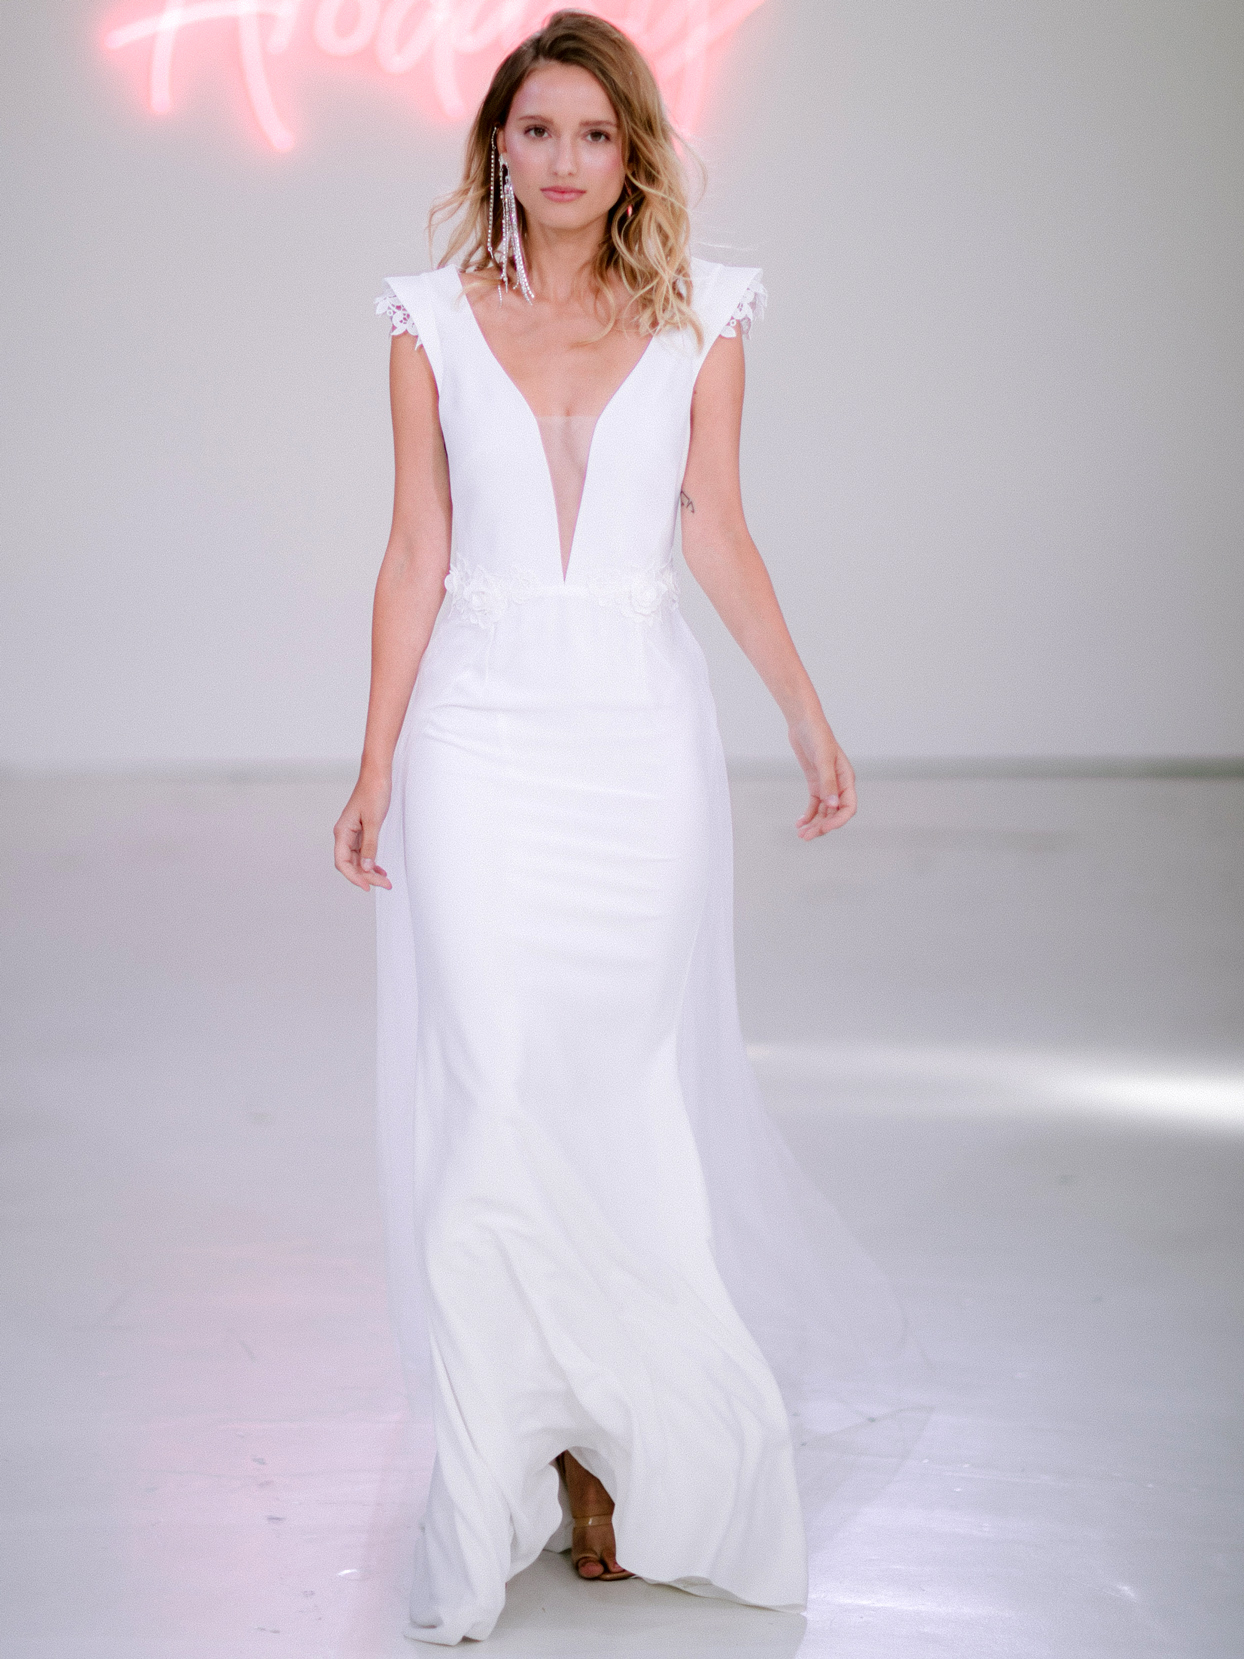 Rime Arodaky X The Mews Bridal cap sleeve plunging v-neck wedding dress fall 2020